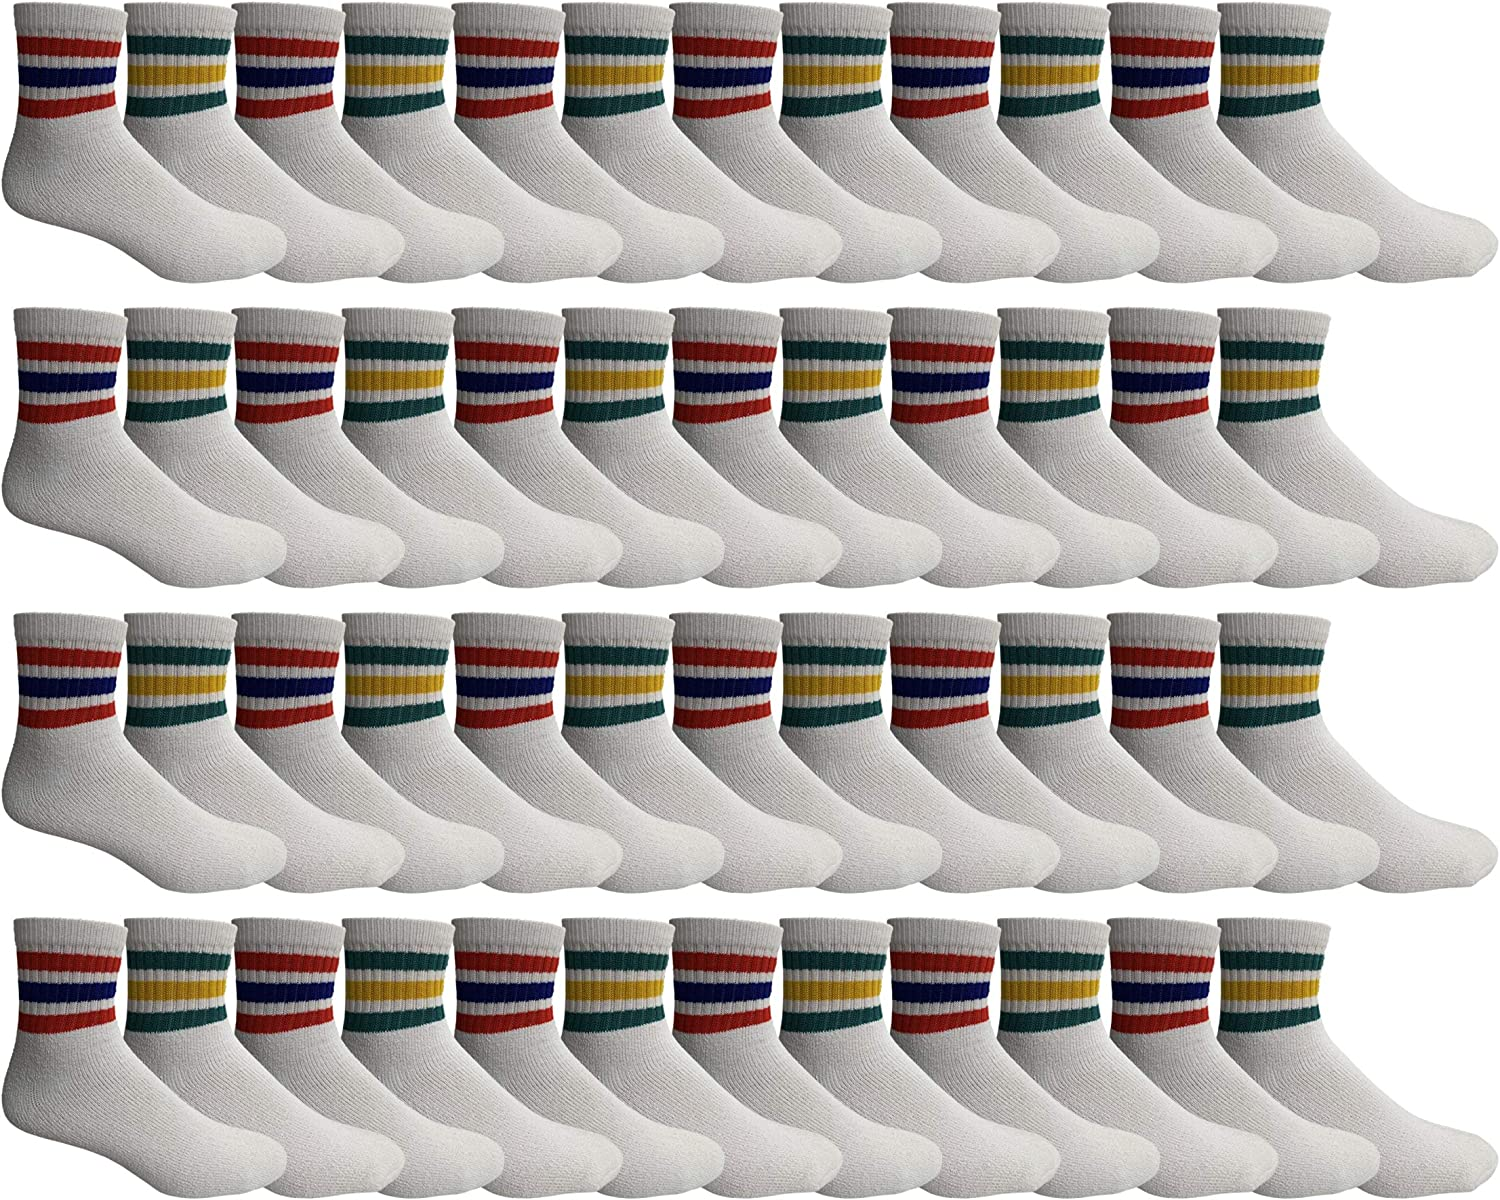 2021 model Yacht Smith Men Wholesale Cotton Sport Ankle Sock Max 49% OFF Athletic Mid